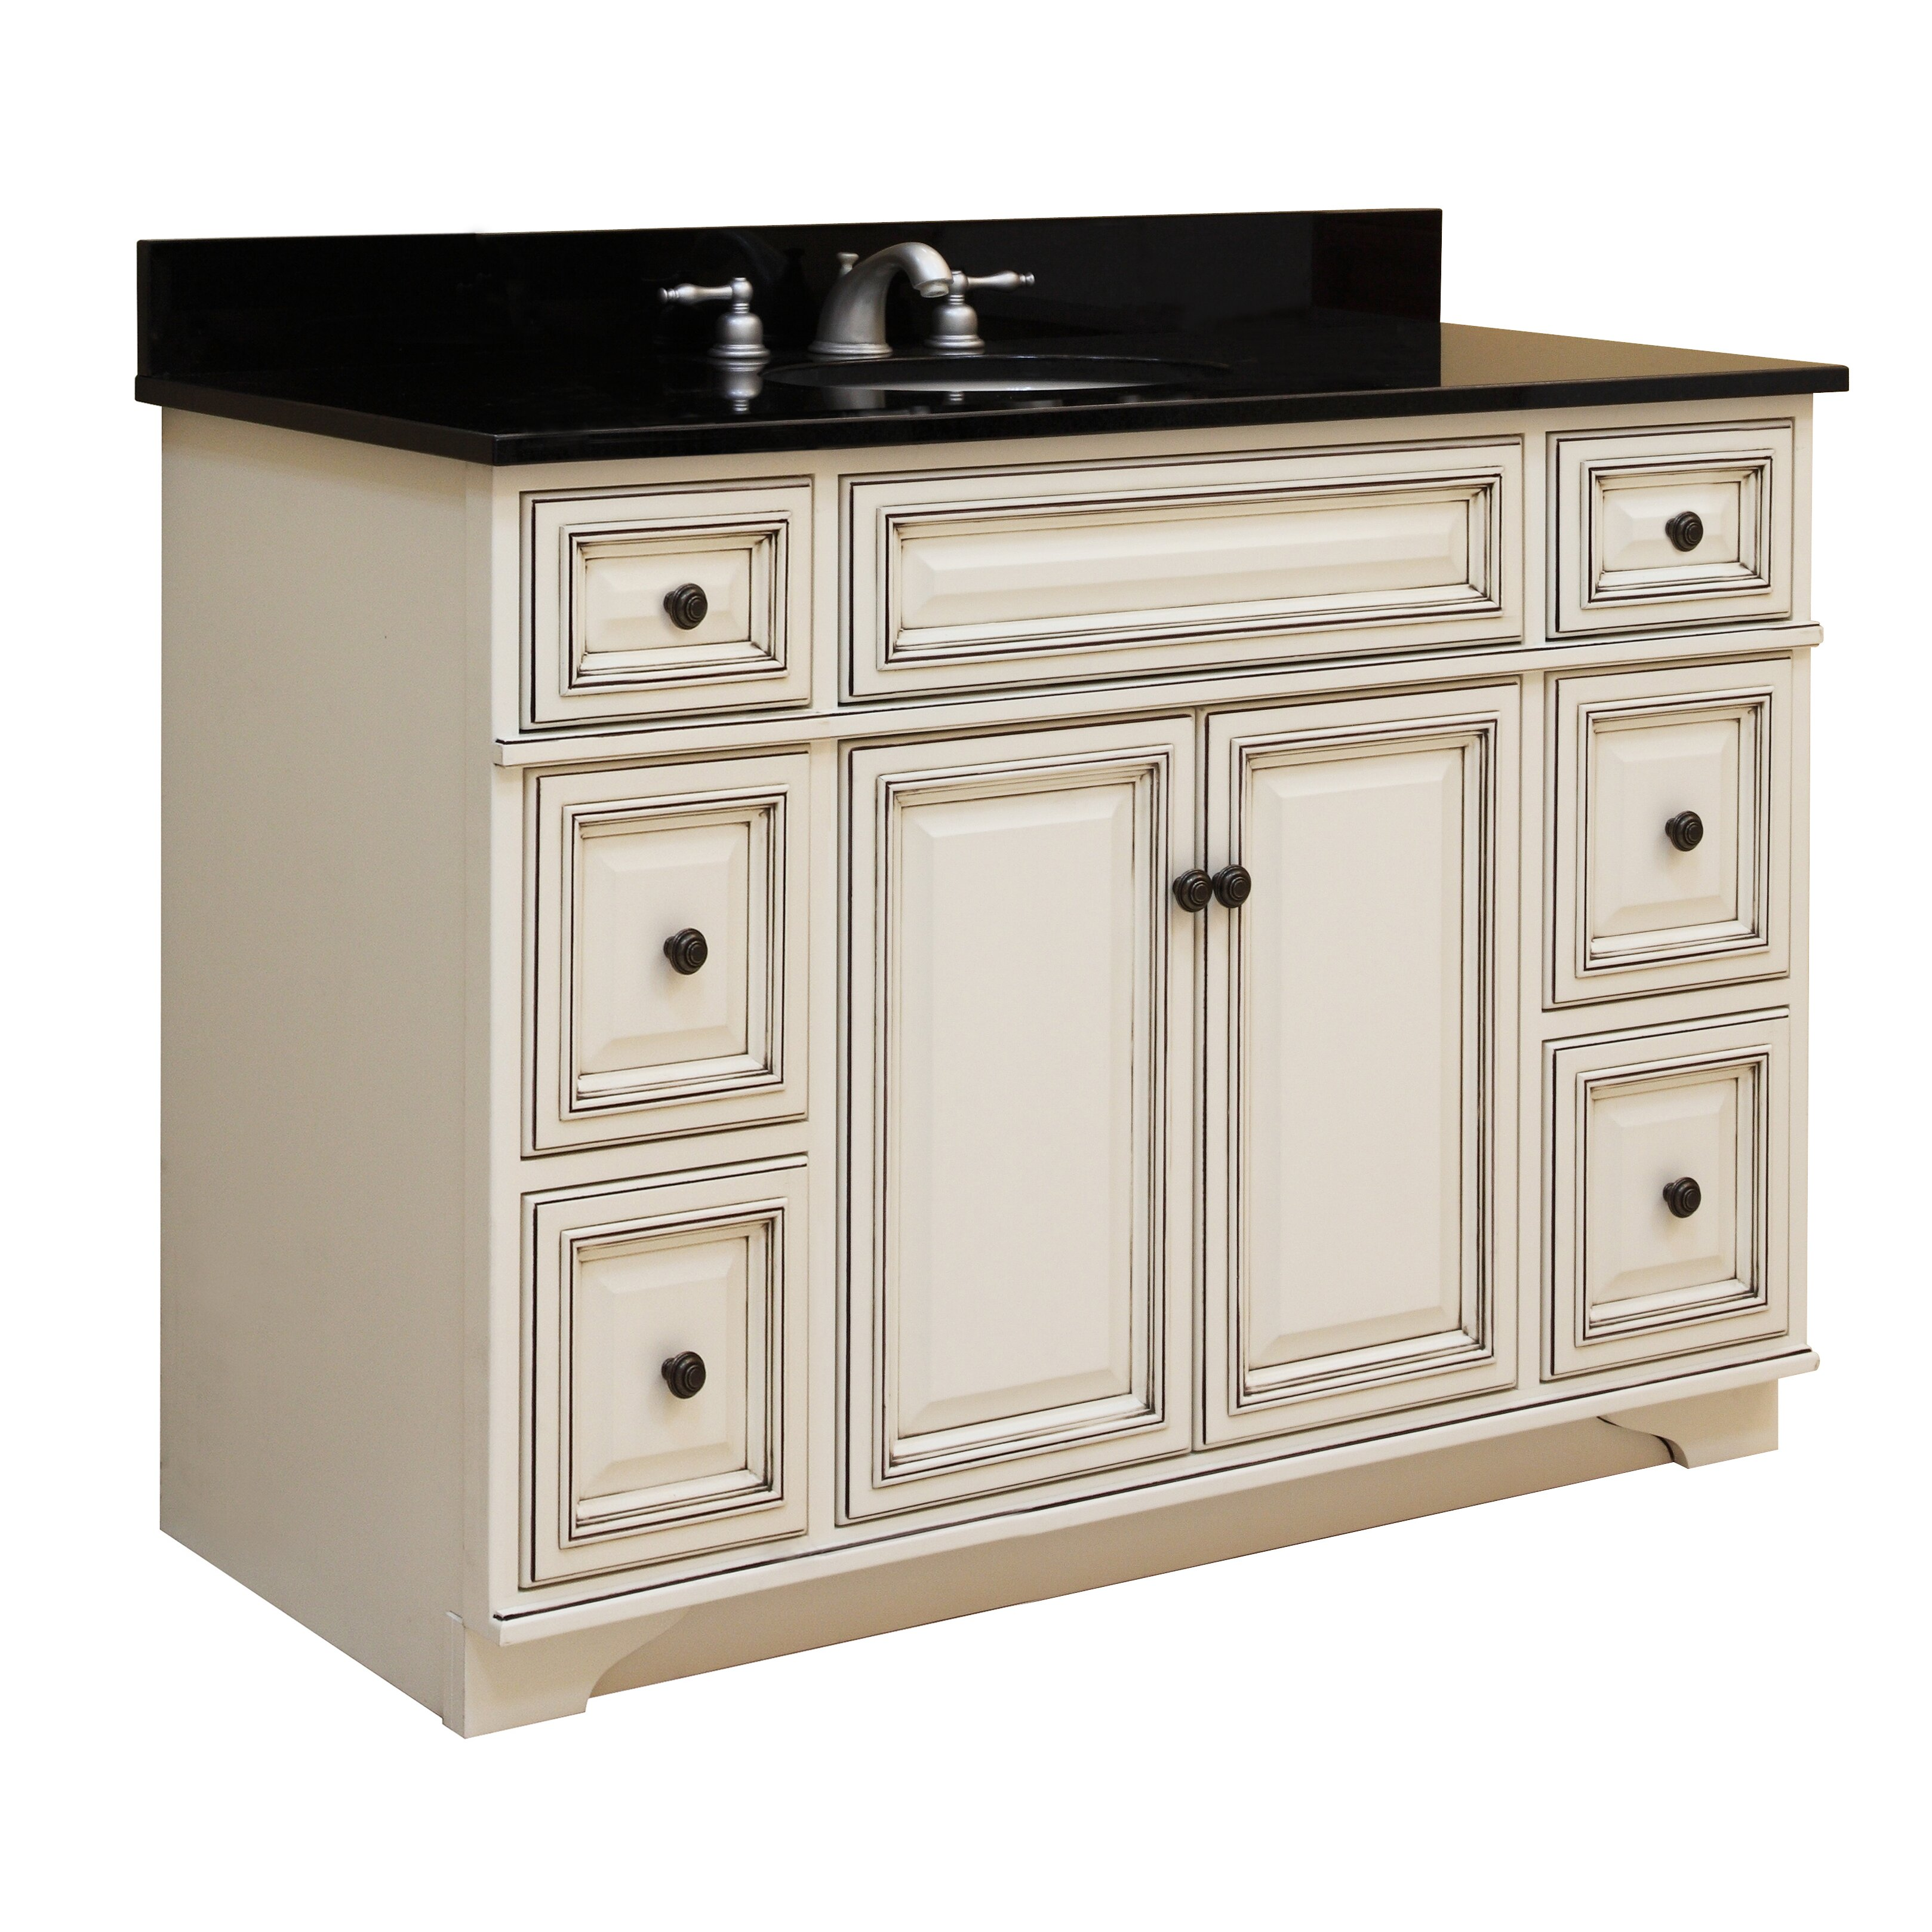 Sunny wood sanibel 48 bathroom vanity base wayfair - Bathroom vanity cabinet base only ...